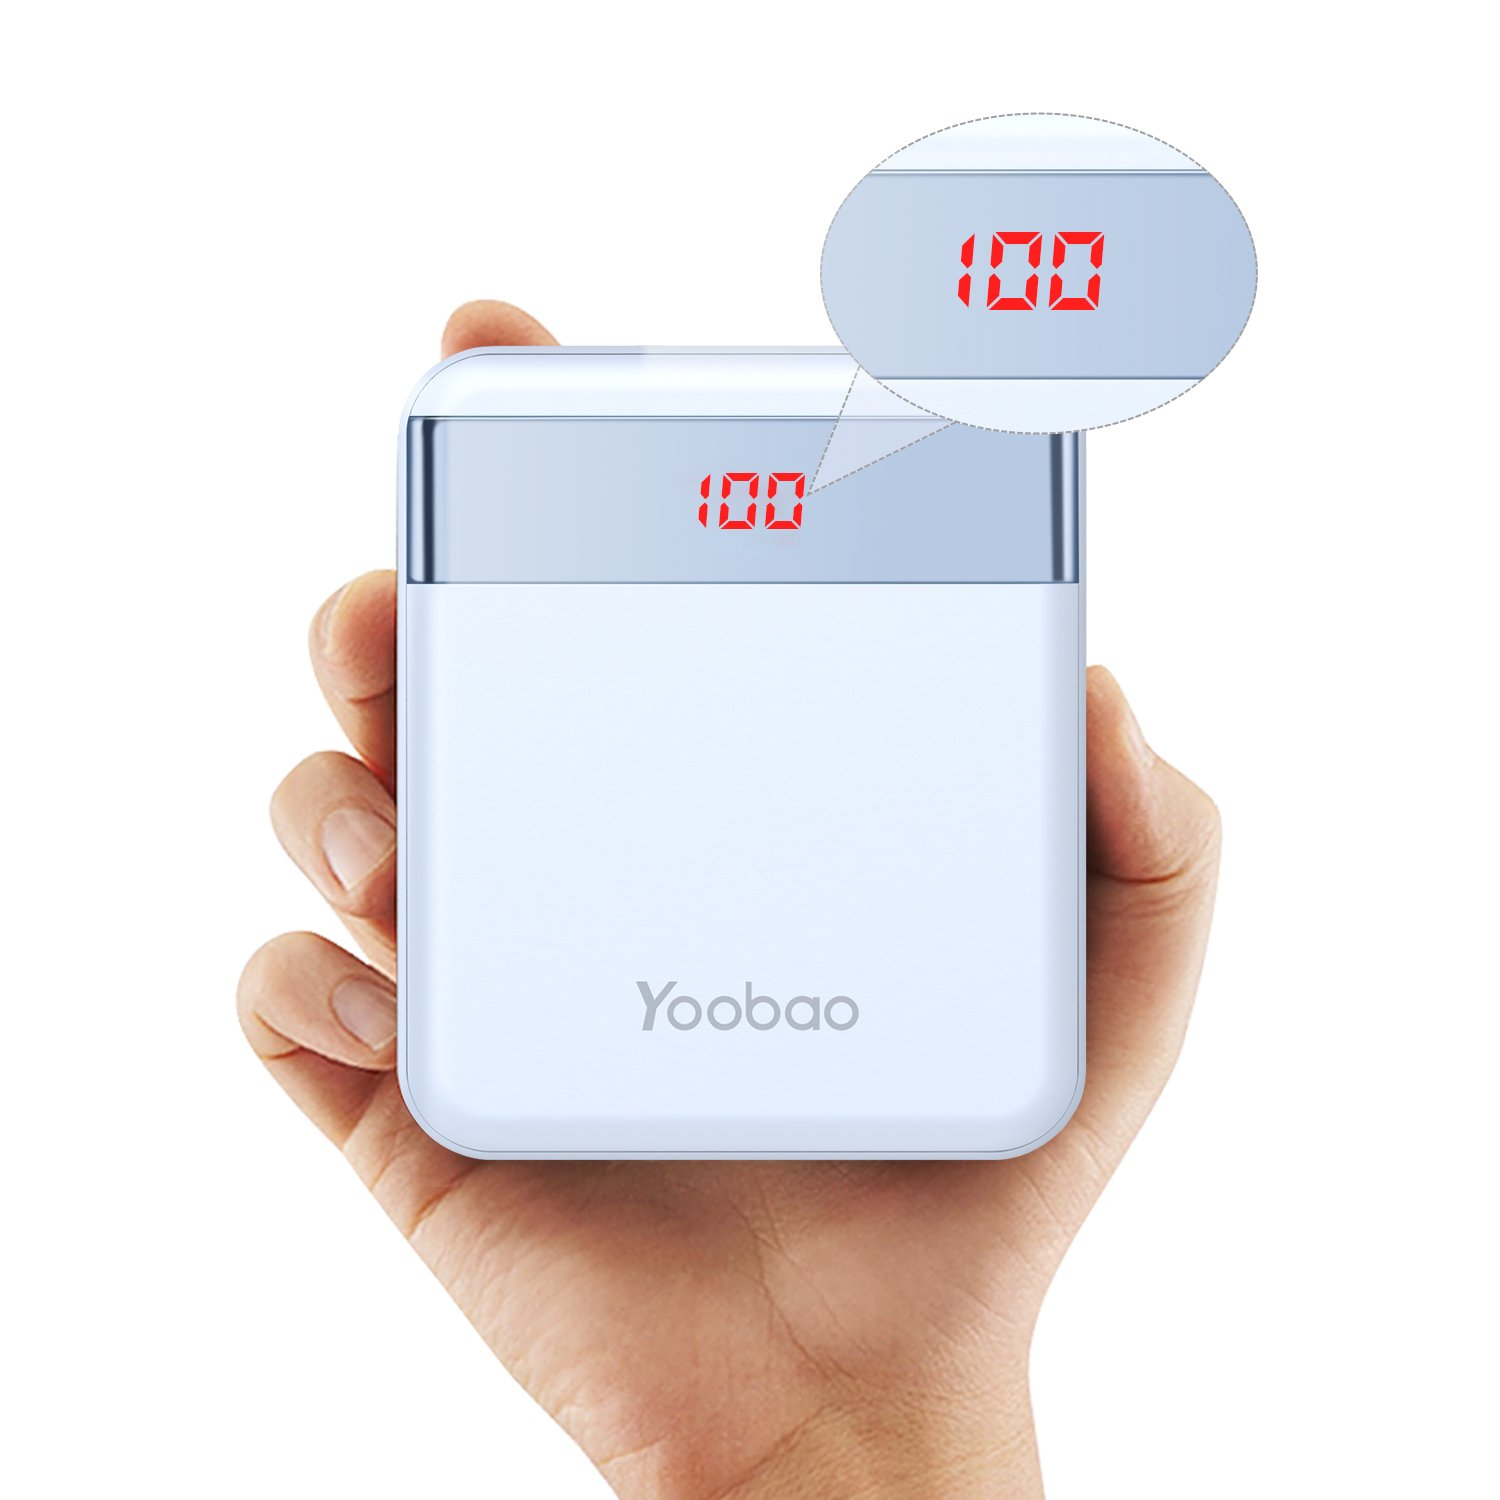 Power Bank 10000mAh Yoobao M4Pro Small Portable Charger LED Display Lightning & Micro Input External Cell Phone Battery Backup Dual Output 2.4A Compatible iPhone X 8 7 6 Plus Android Samsung etc- Blue